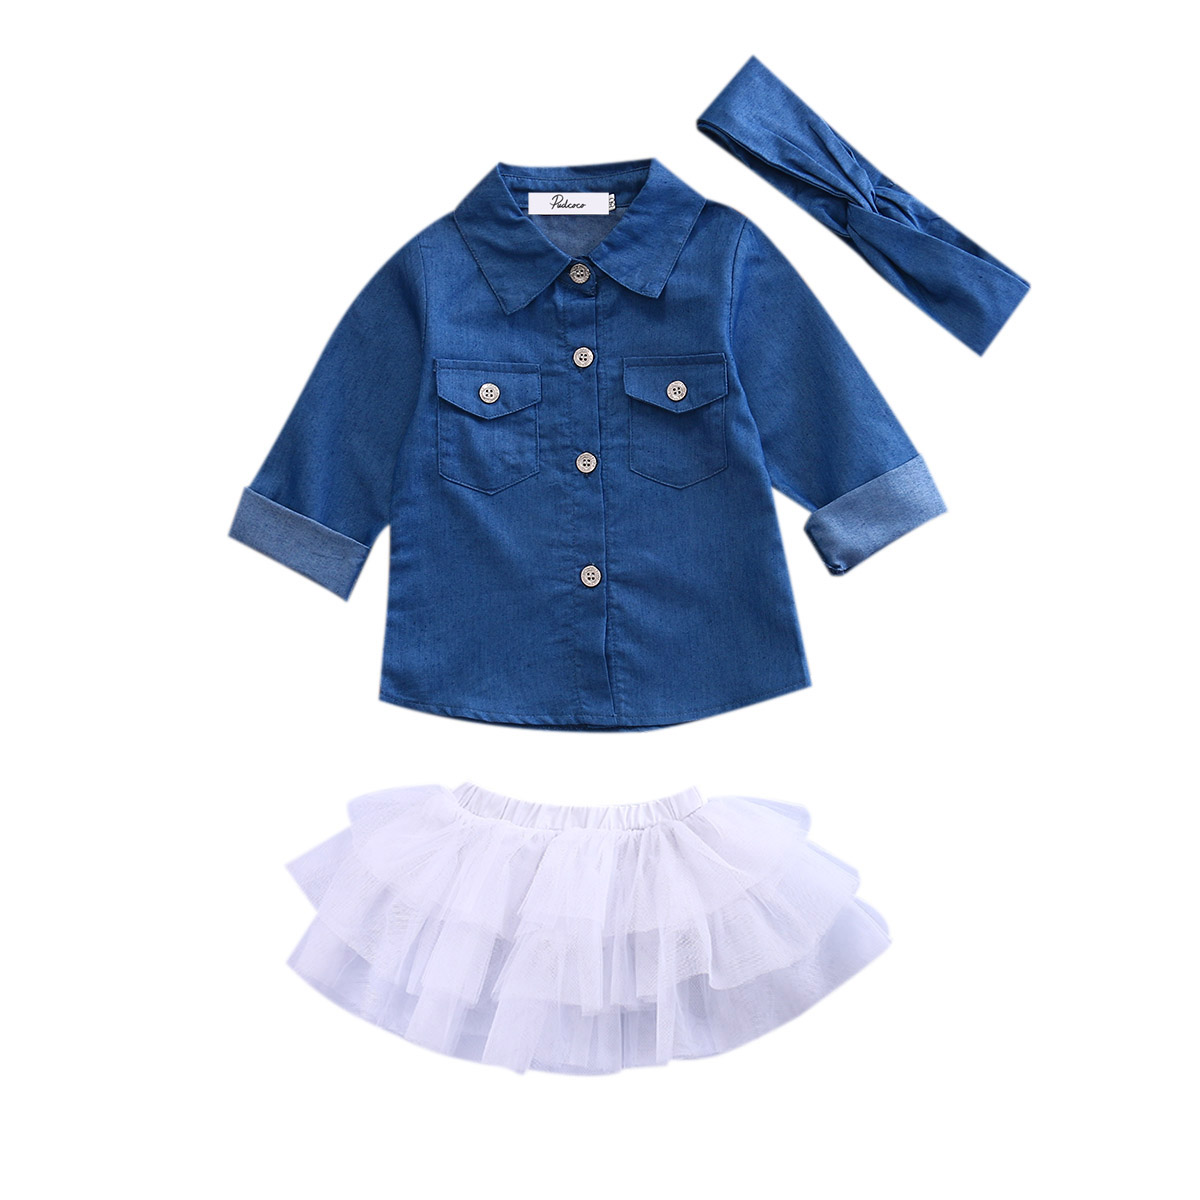 3pcs New Kids Baby Girls Denim Tops Long Sleeve Shirt+White Tutu Skirts + Headband Outfits Set 1-5Y 2017 spring boutique baby girl pullovers puff skirts girls sets embroidery long sleeve tops korean tutu skirts suits 2pcs set